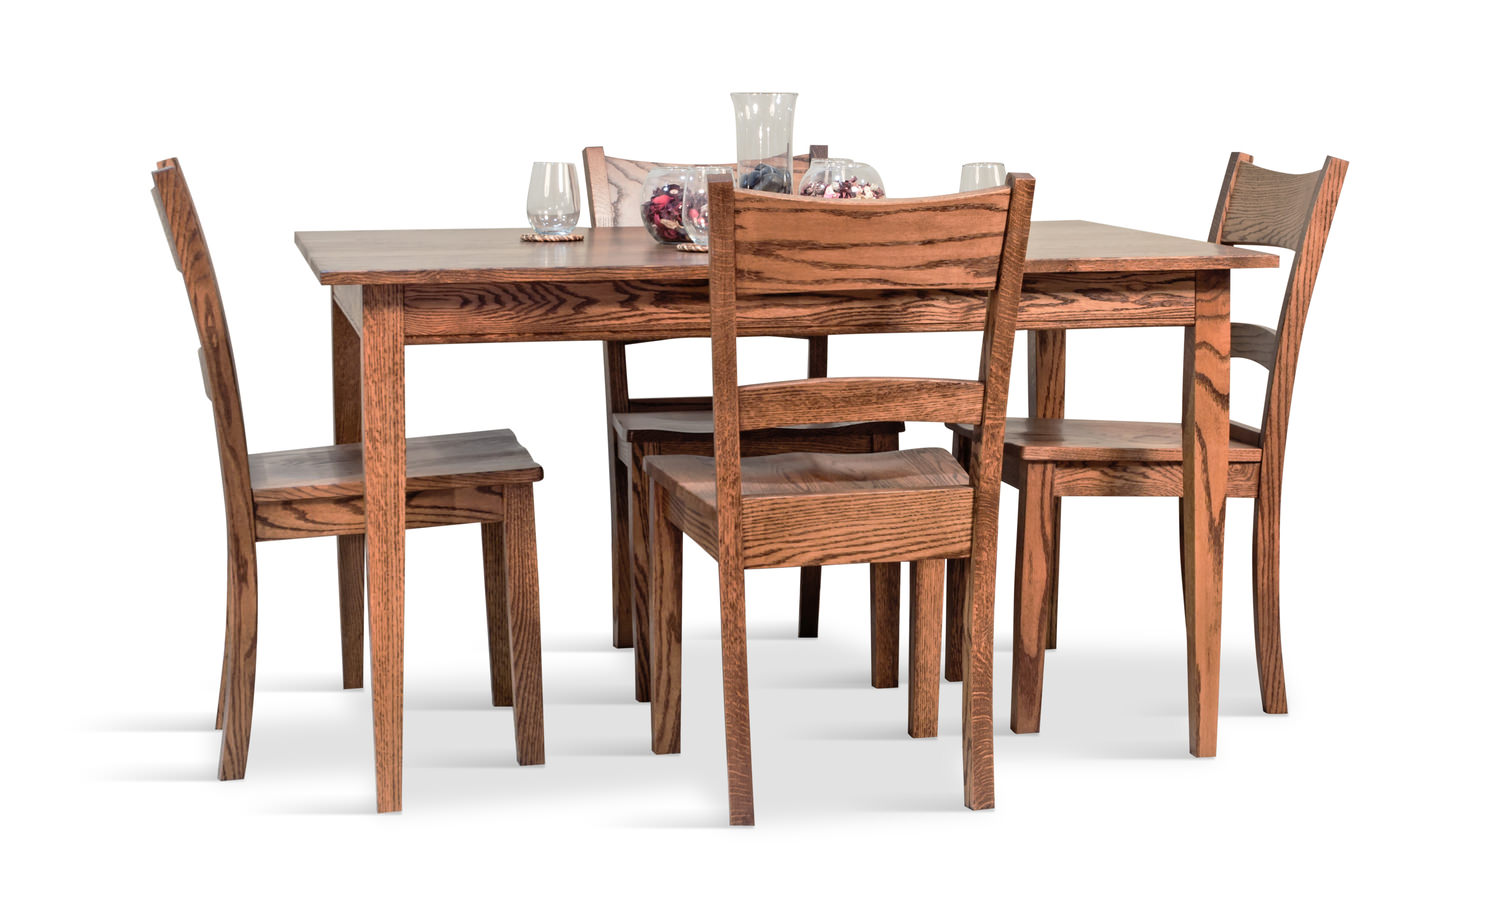 Brilliant Lancaster Dining Table With 4 Chairs Home Interior And Landscaping Mentranervesignezvosmurscom